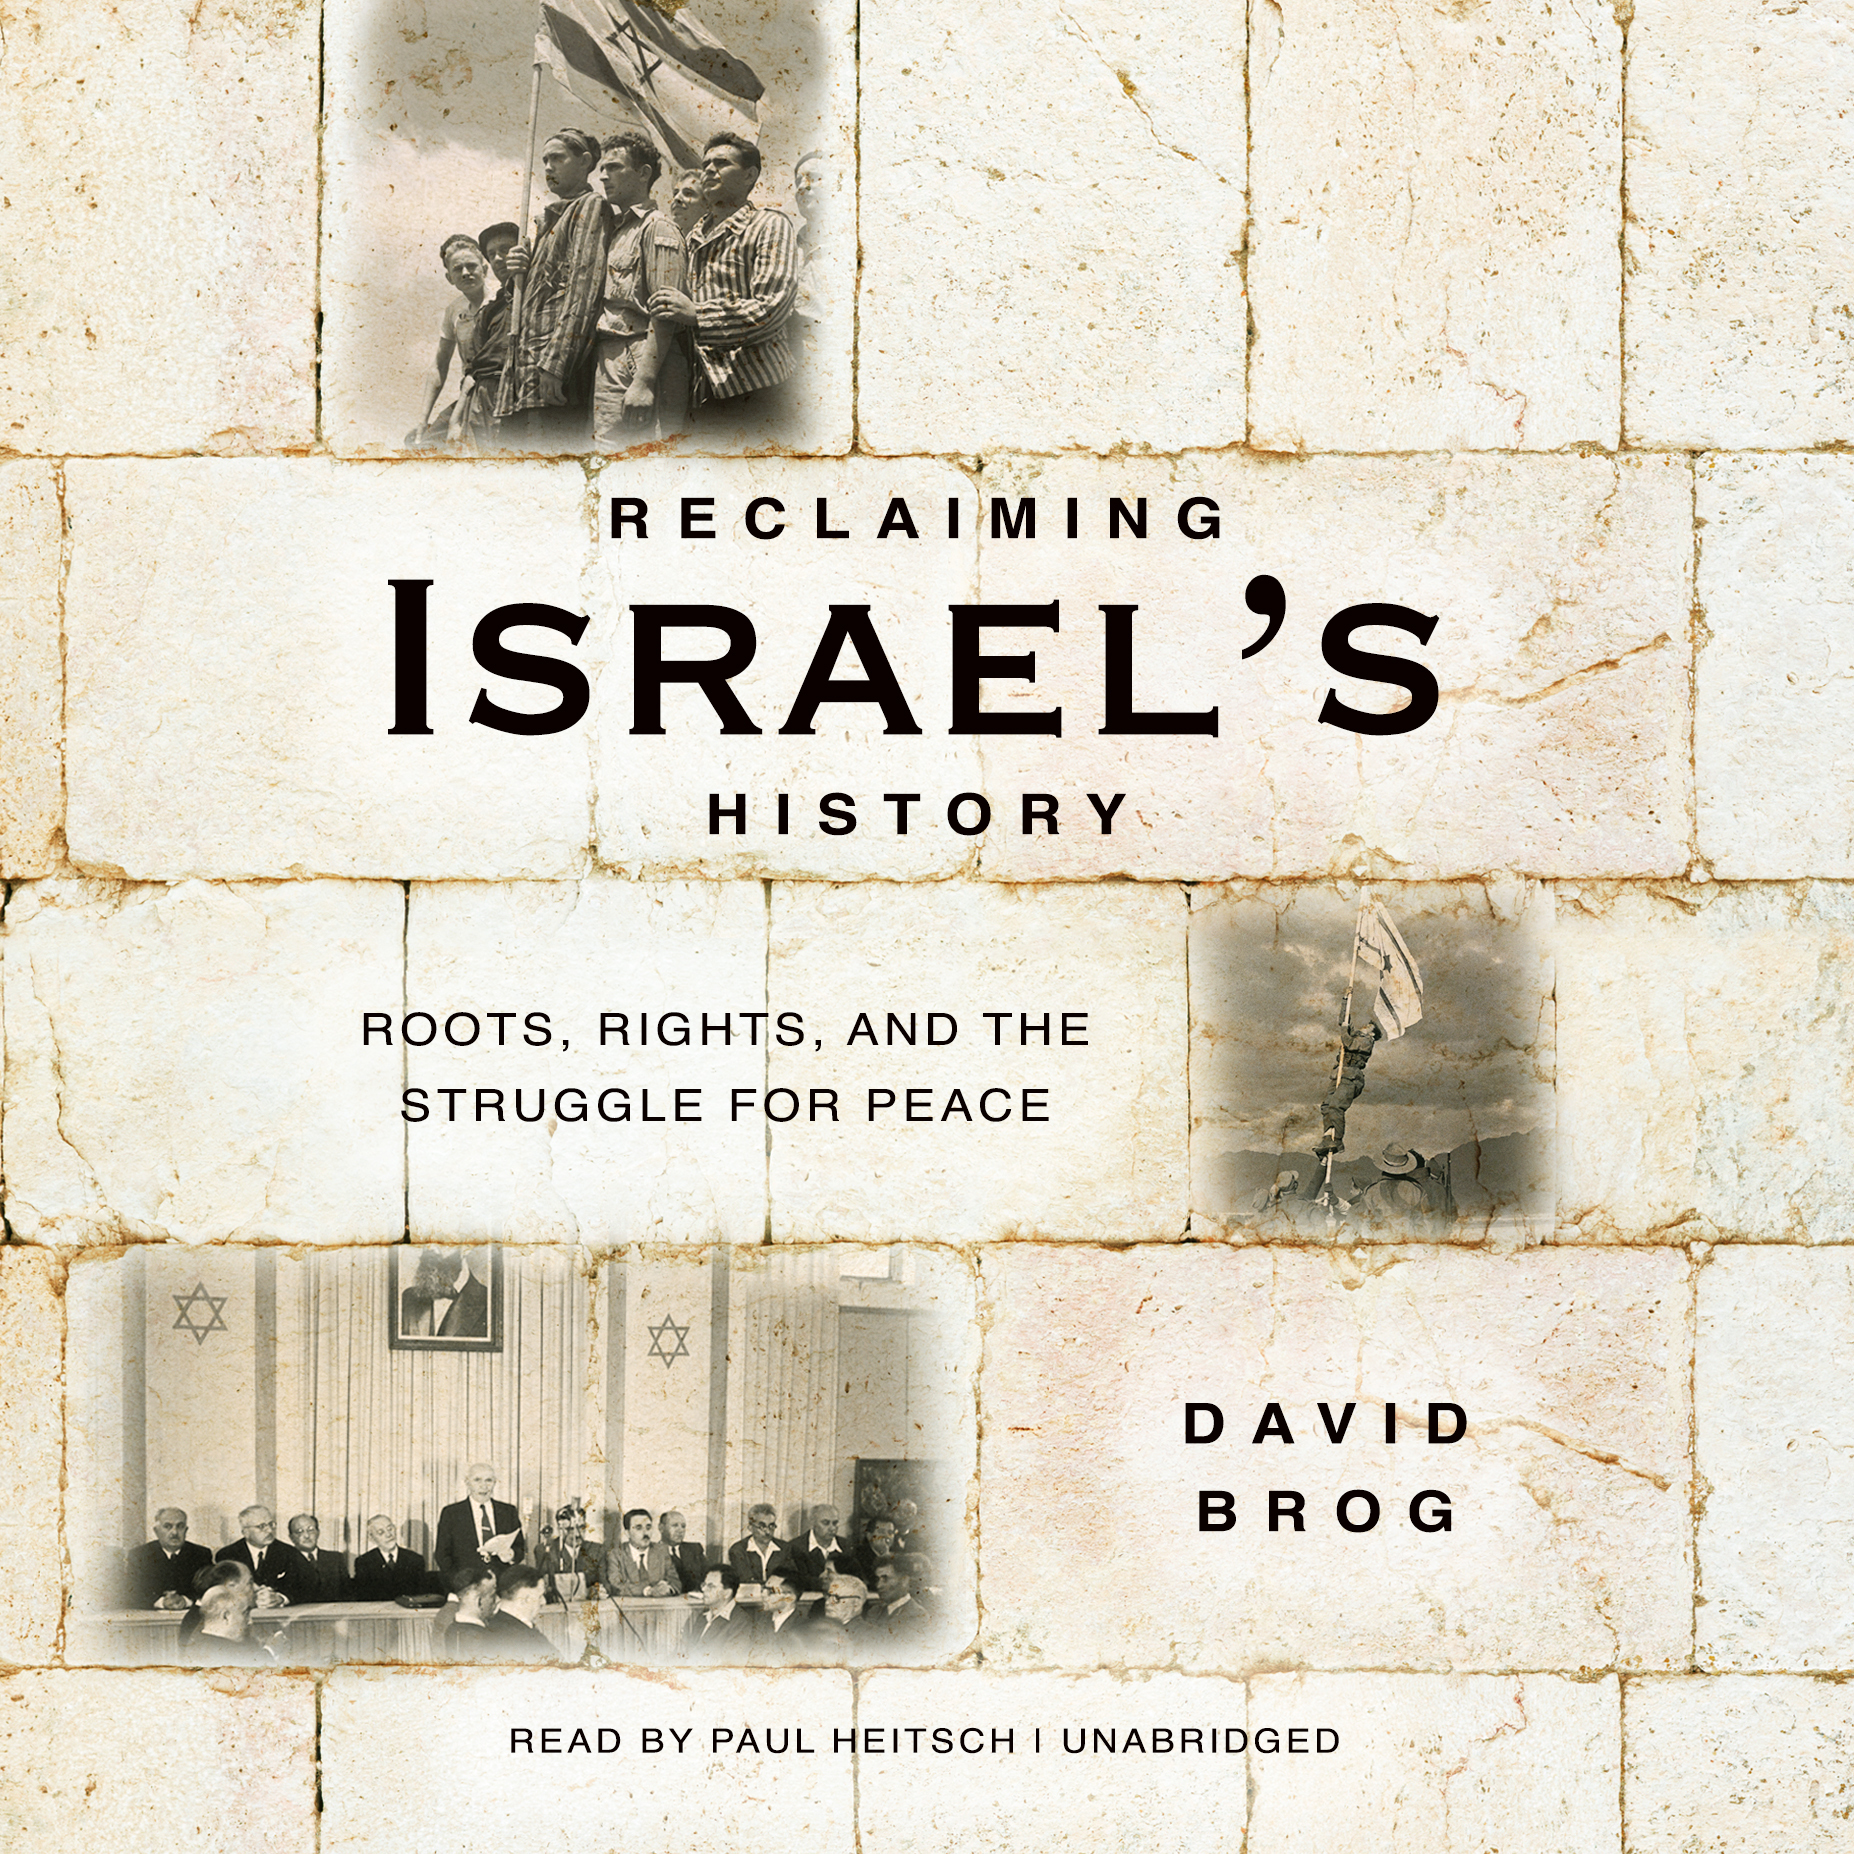 Printable Reclaiming Israel's History: Roots, Rights, and the Struggle for Peace Audiobook Cover Art